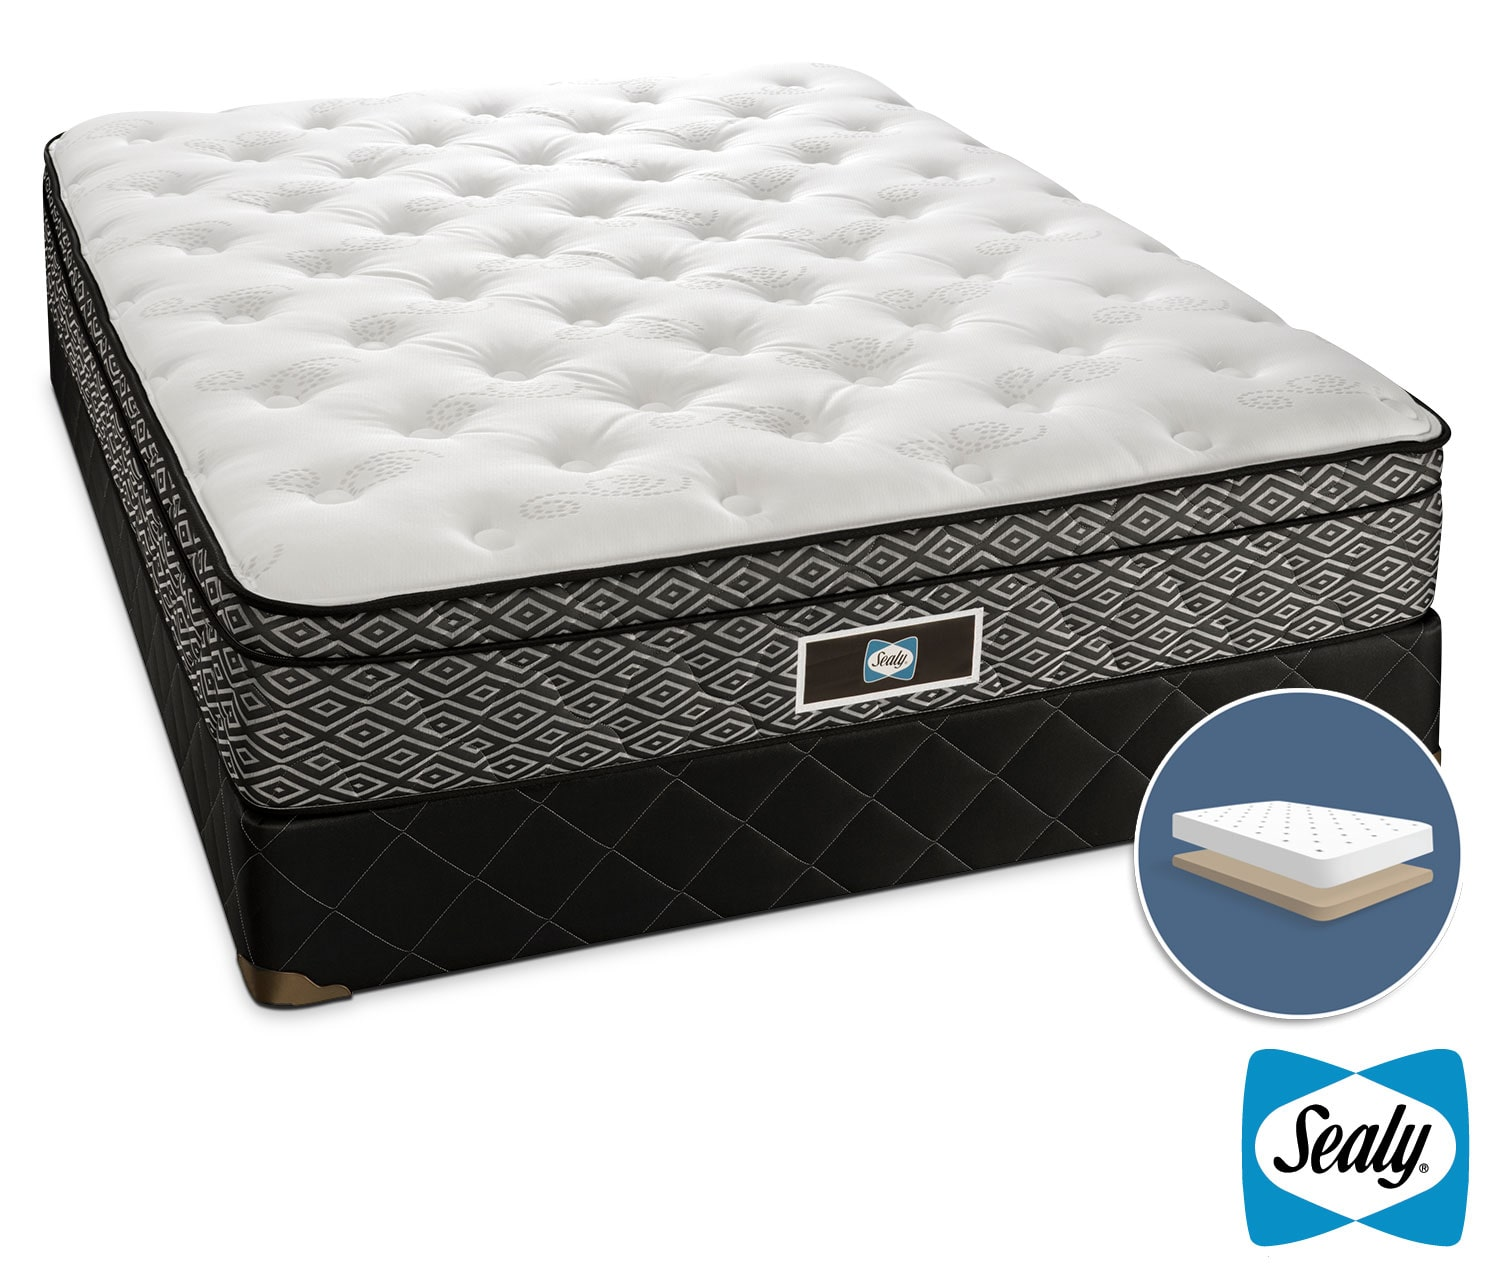 Mattresses and Bedding - Sealy Nero Cushion Firm Full Mattress/Low-Profile Boxspring Set